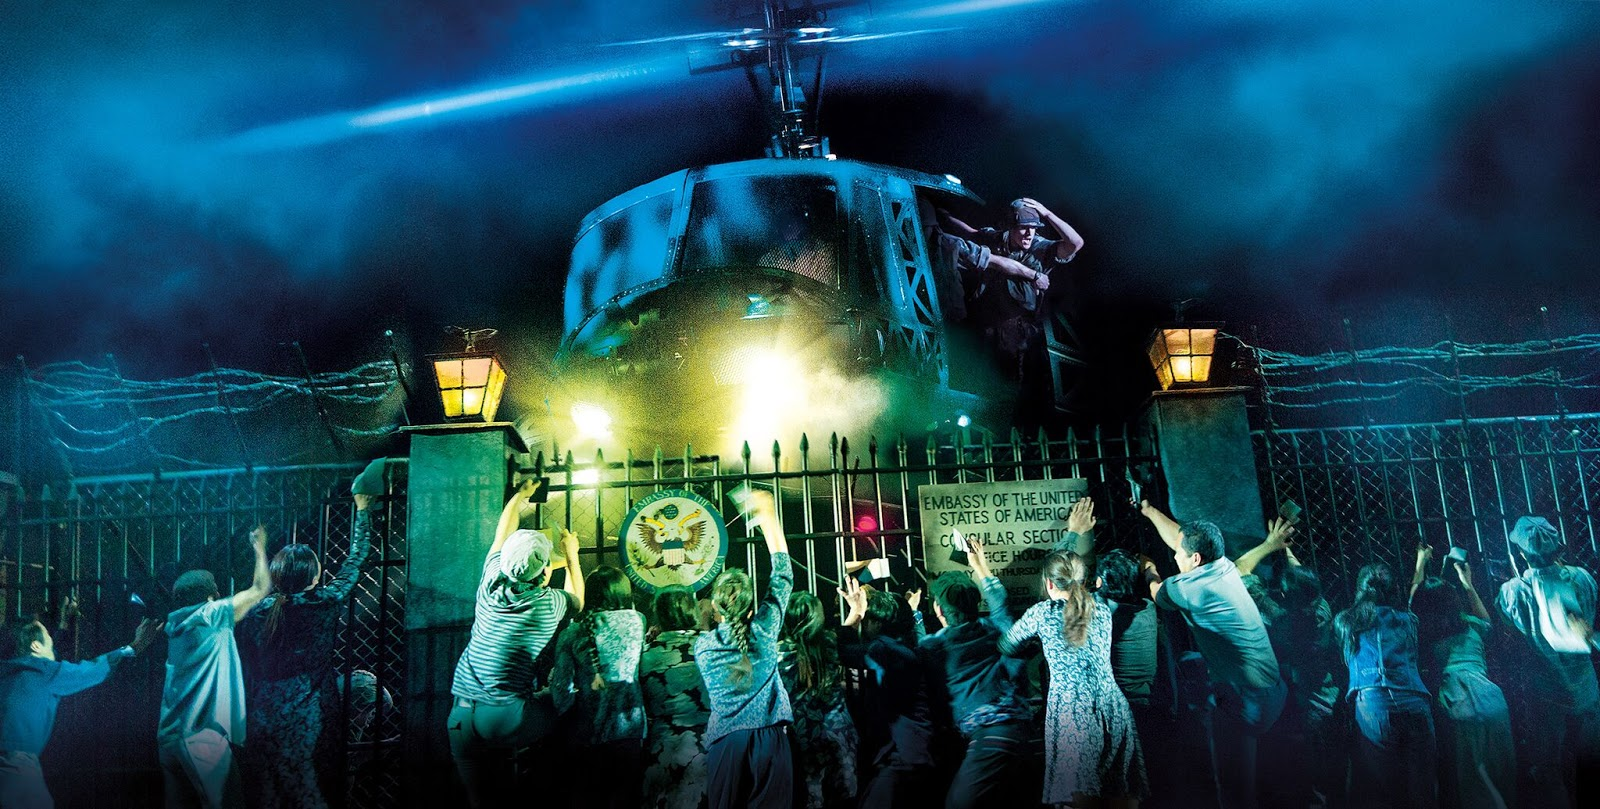 REVIEW: Miss Saigon at the Mayflower Theatre in Southampton